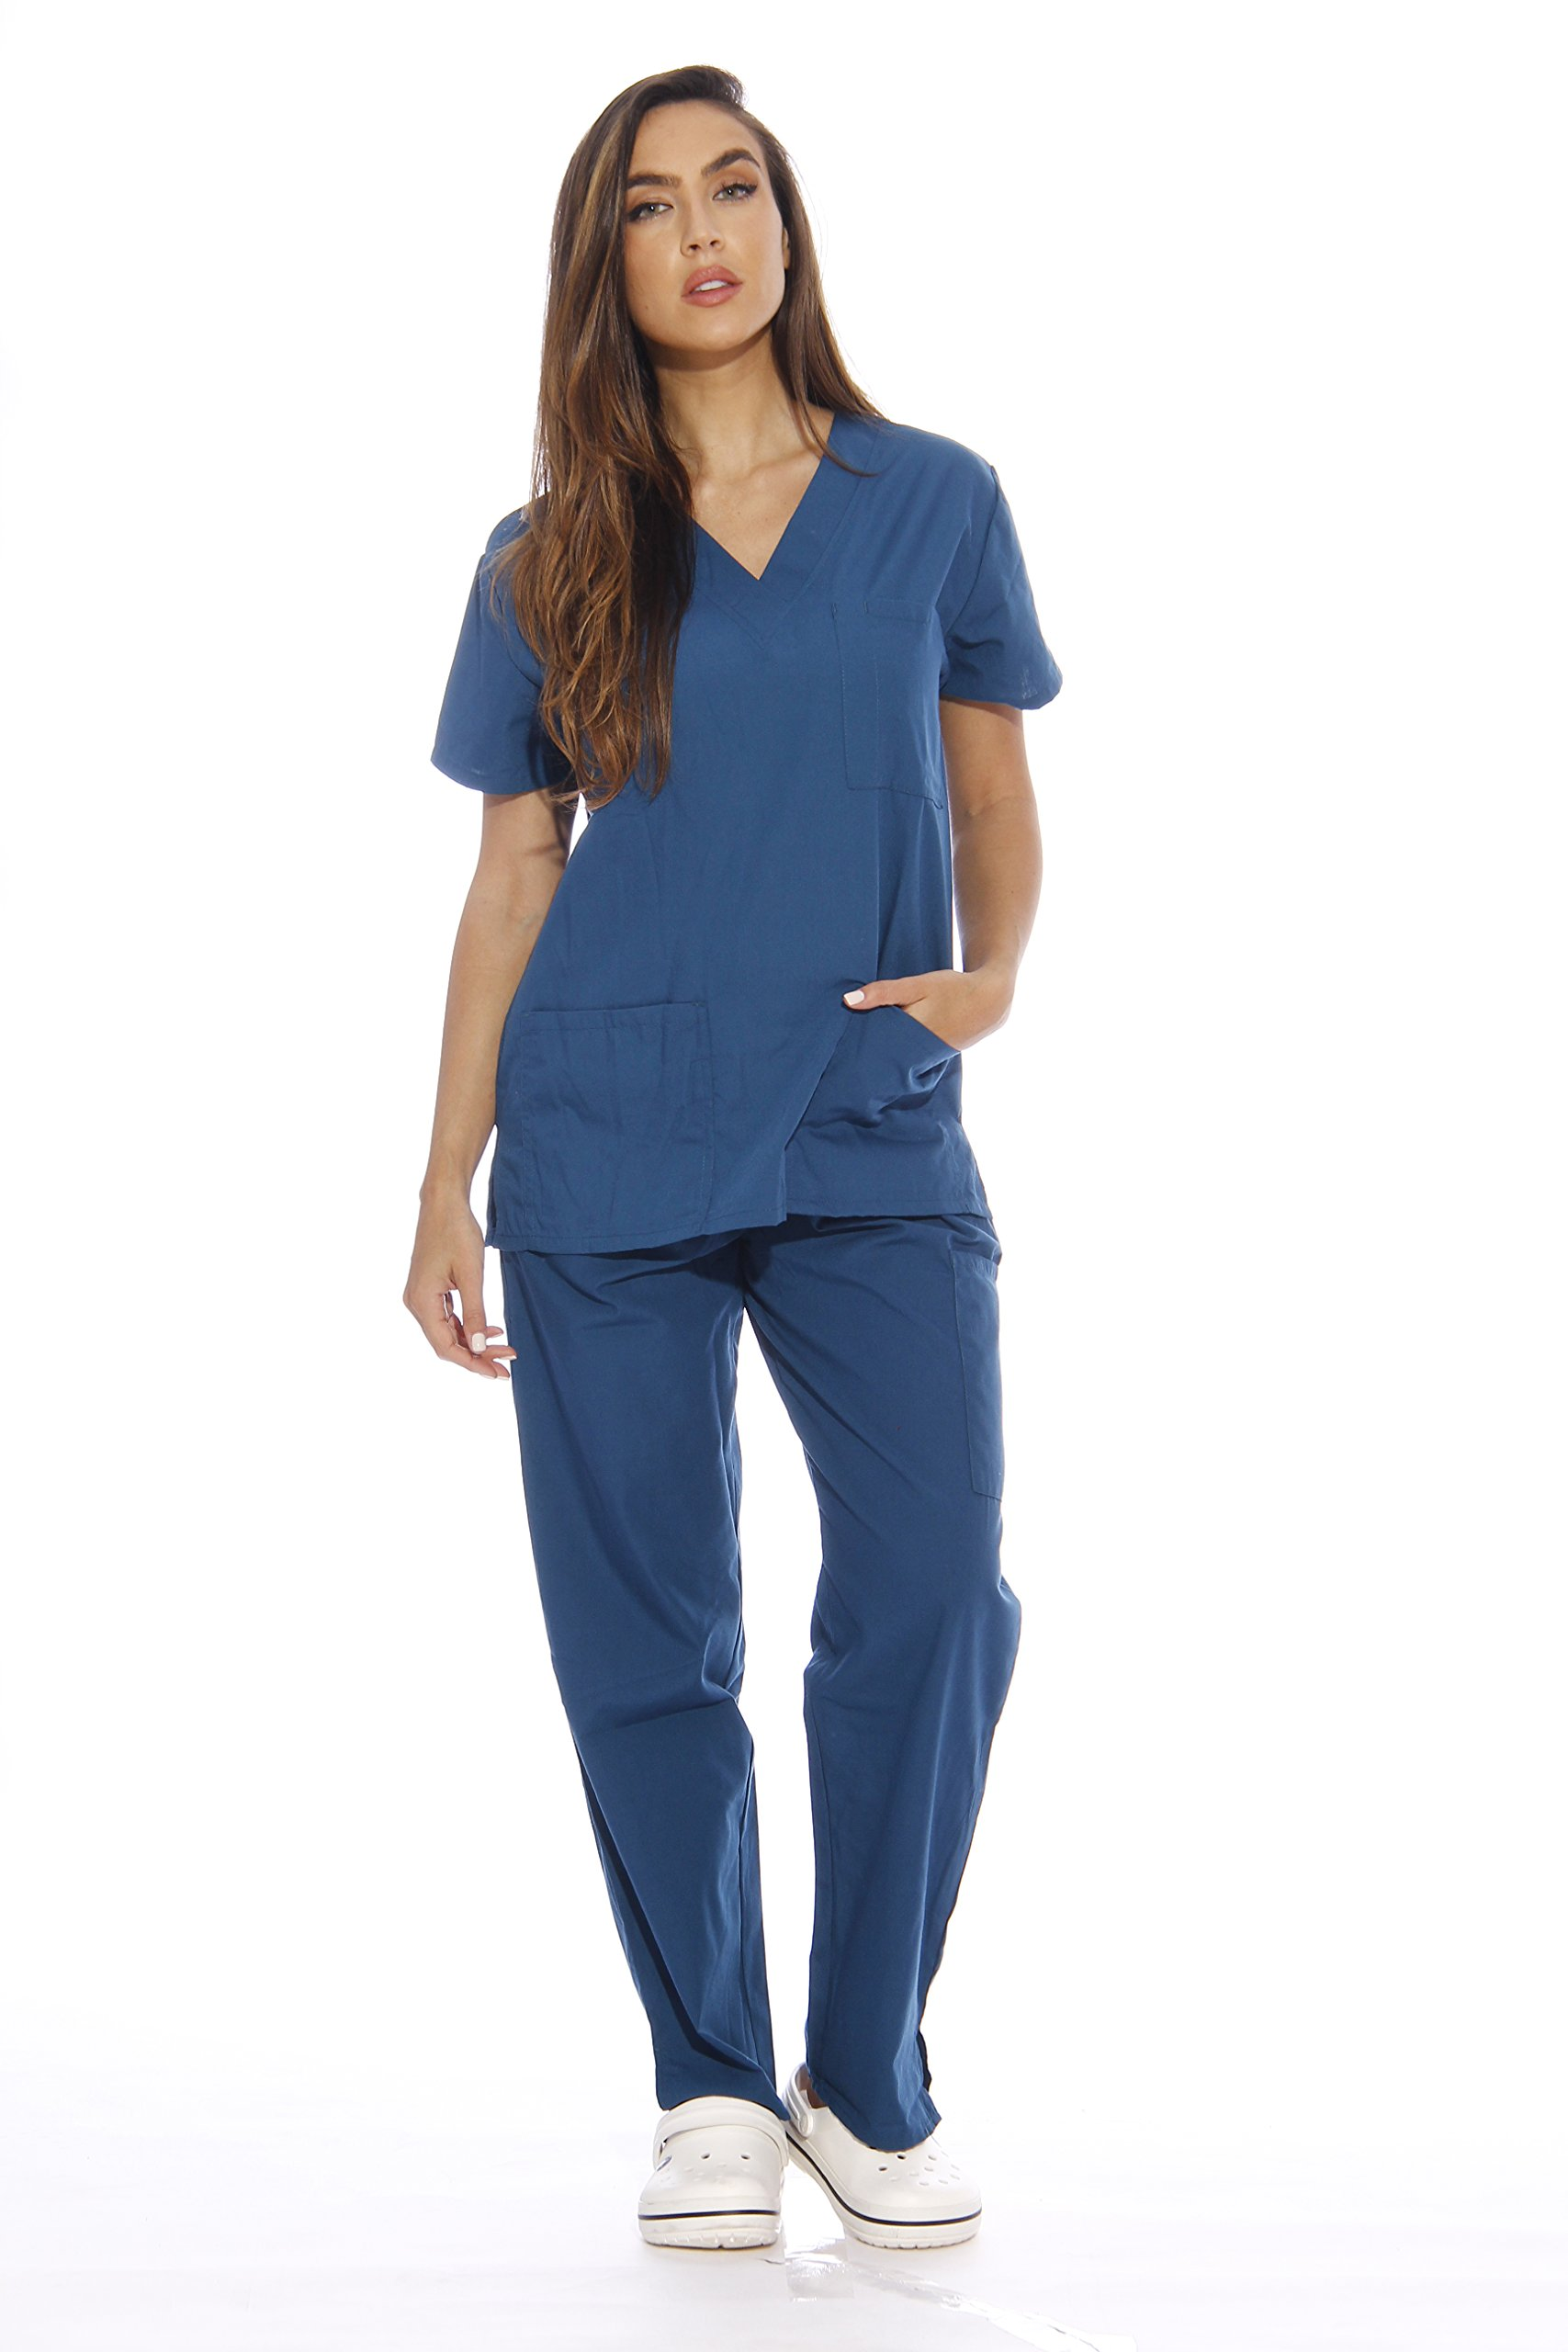 Just Love Women's Scrub Sets Six Pocket Medical Scrubs (V-Neck With Cargo Pant), Carribean Blue, Small